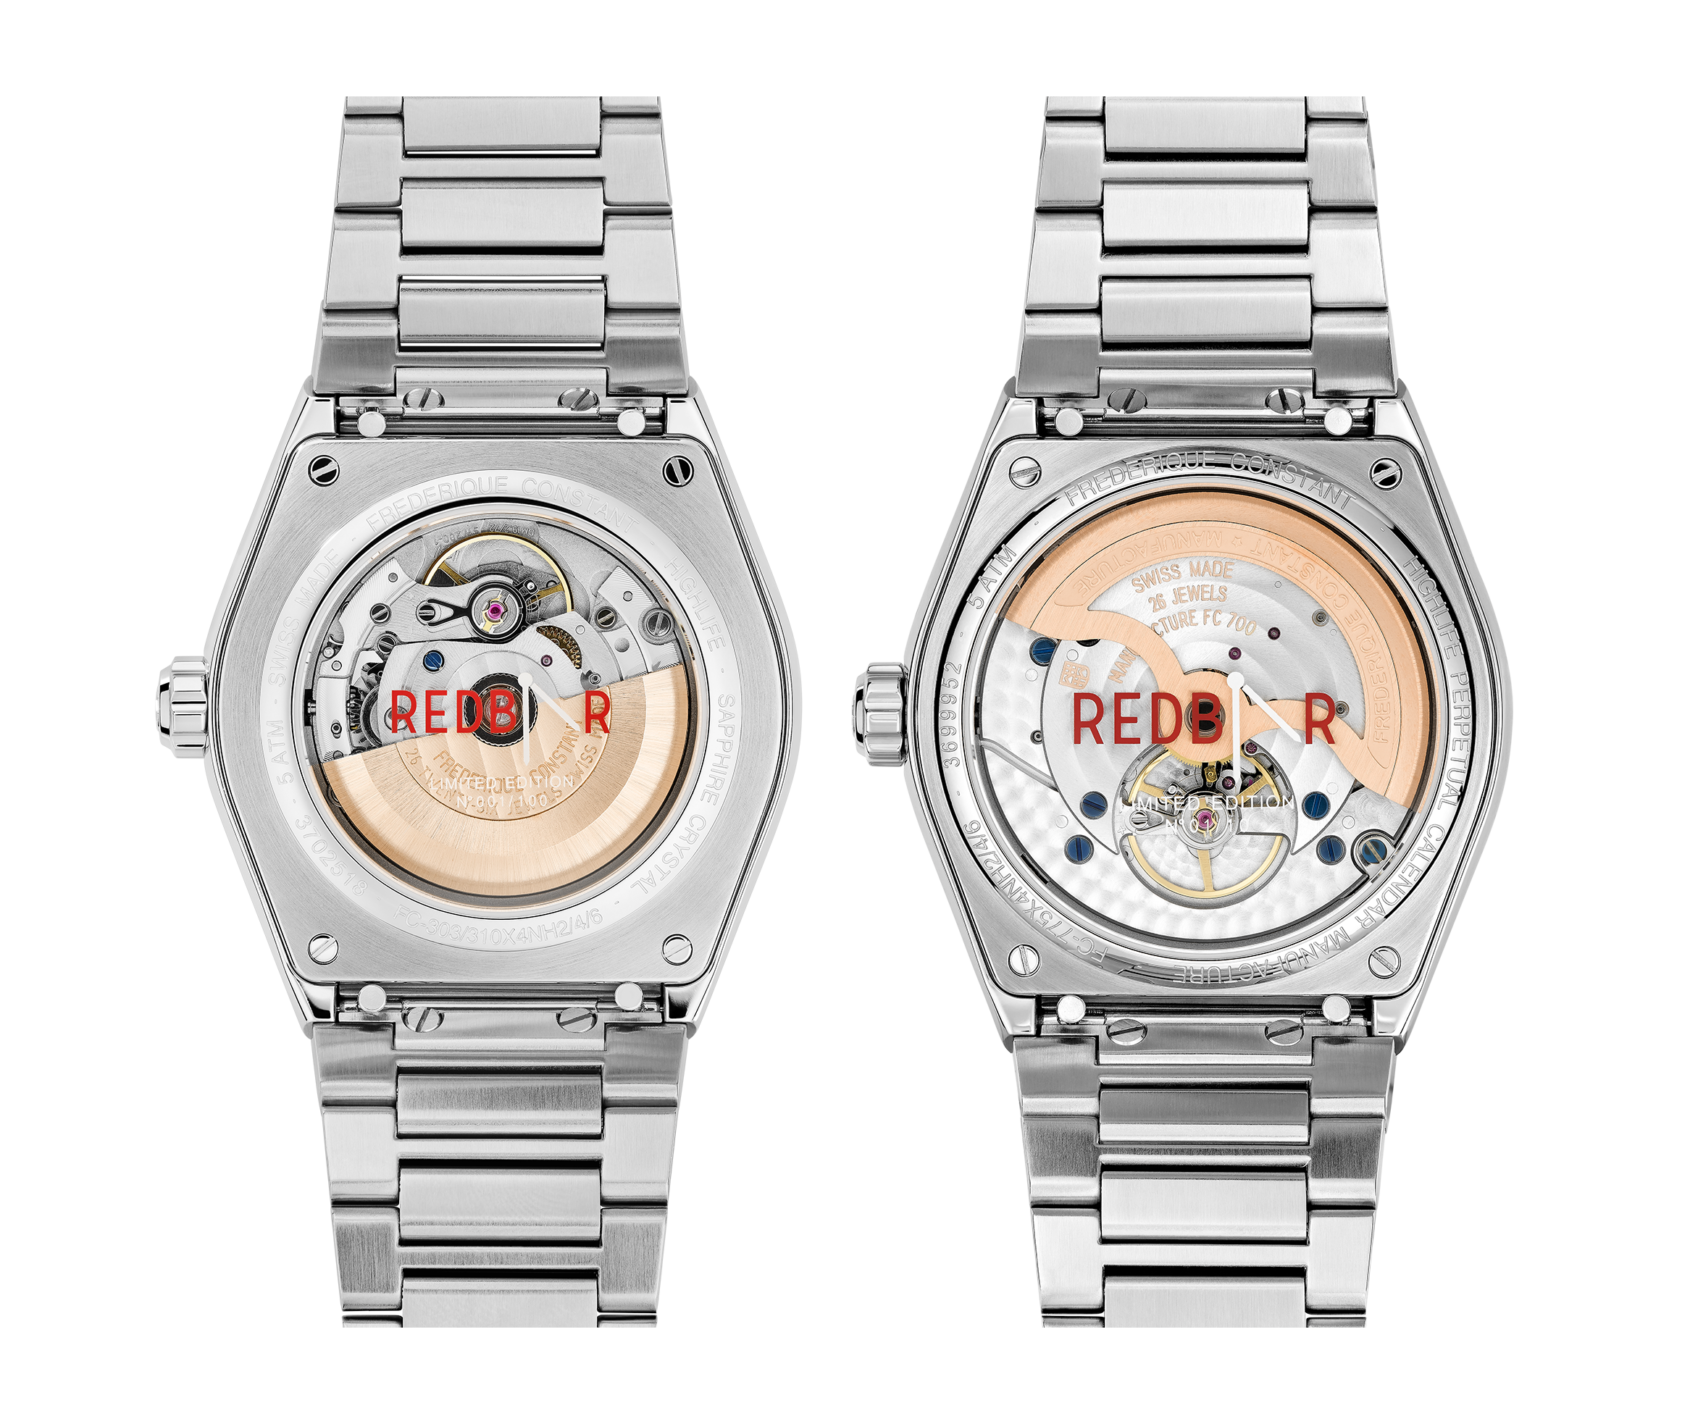 Frederique Constant Highlife RedBar Limited Editions